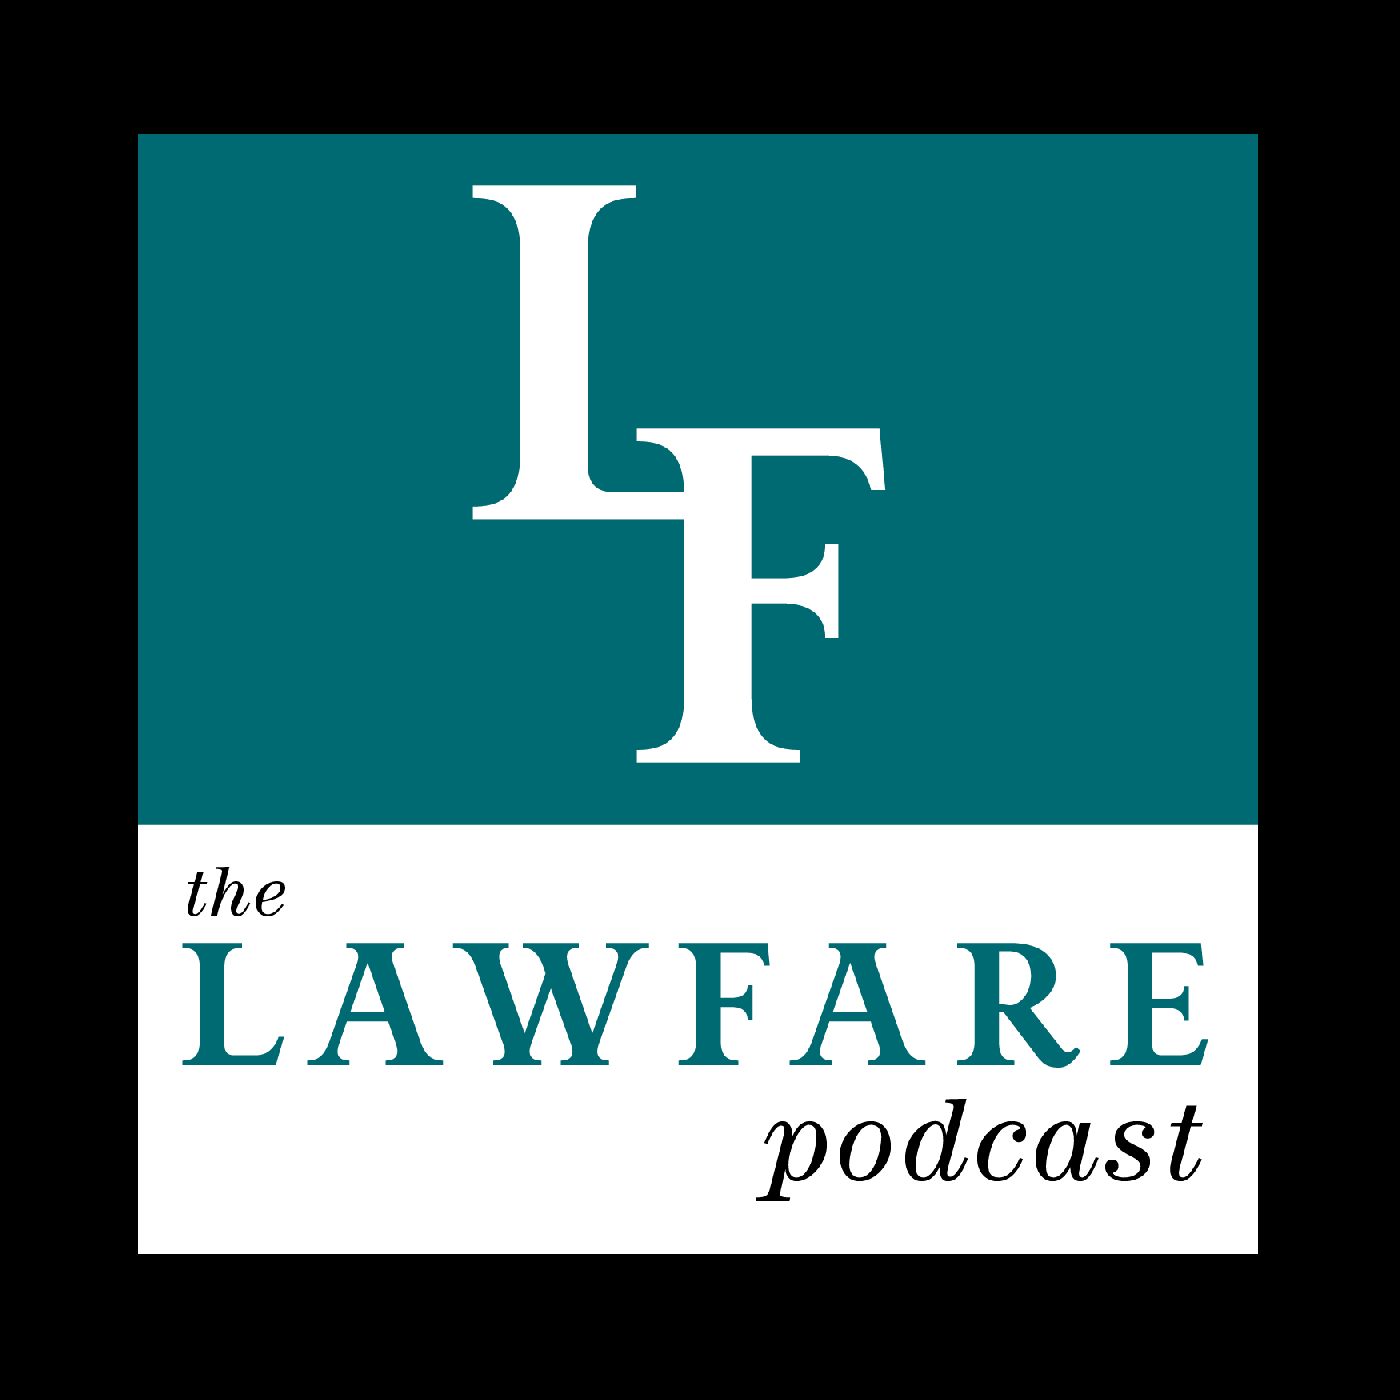 The Lawfare Podcast show image